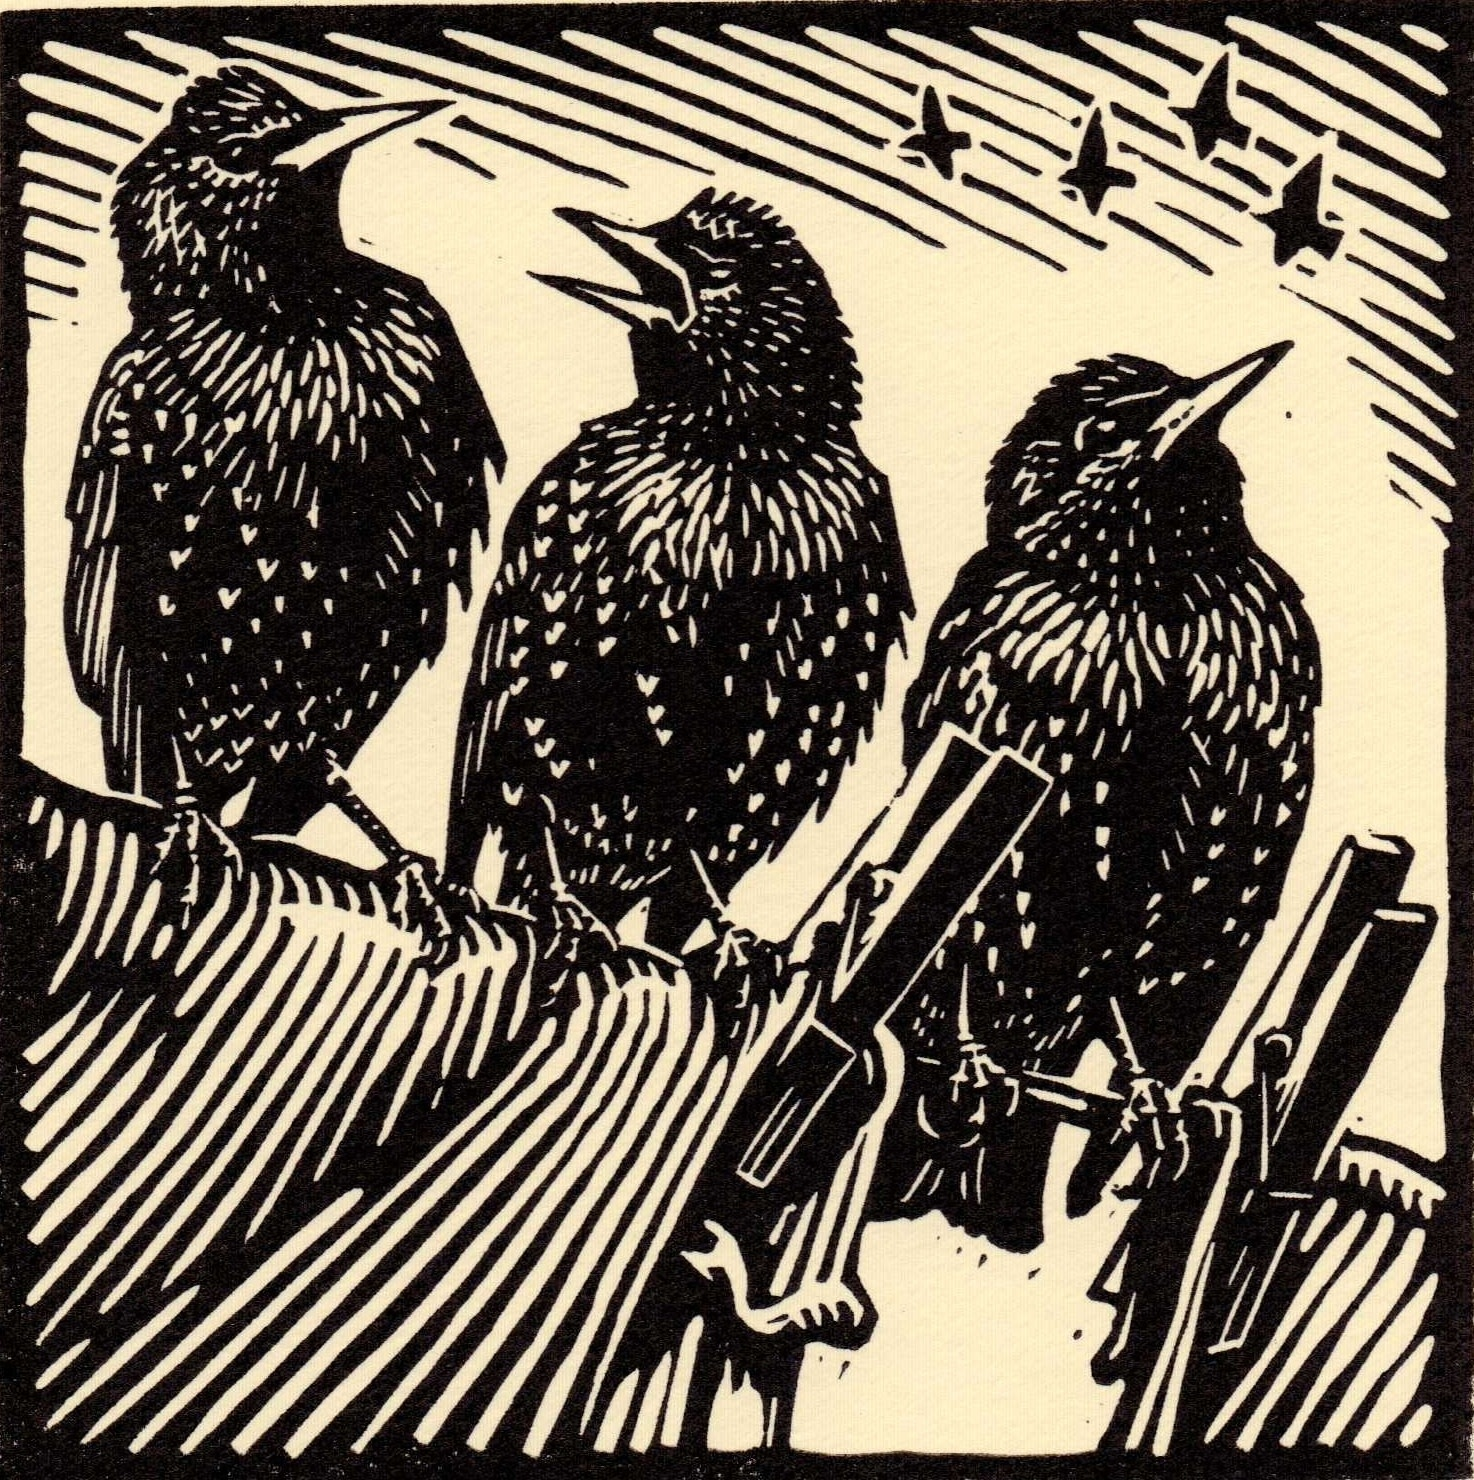 "<span class=""link fancybox-details-link""><a href=""/exhibitions/17/works/image_standalone621/"">View Detail Page</a></span><p><strong>Richard Allen</strong></p><p>Starlings</p><p>linocut, ed of 50</p><p>31 x 31cm</p><p>£145 framed</p><p>£95 unframed</p>"